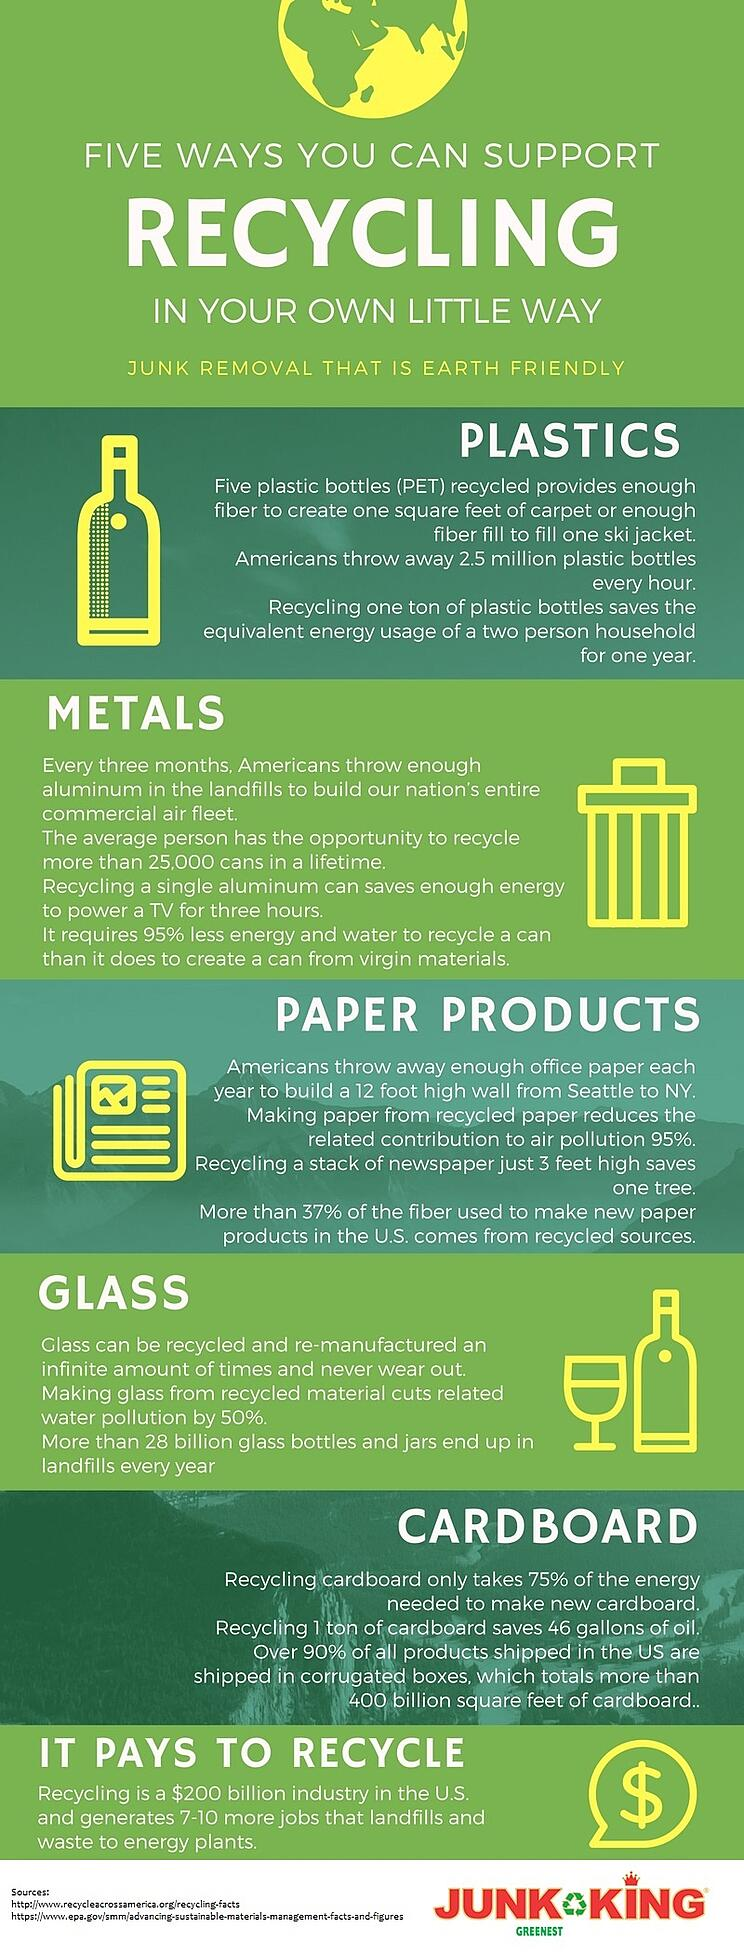 junk-removal-and-recycling-go-together-infographic